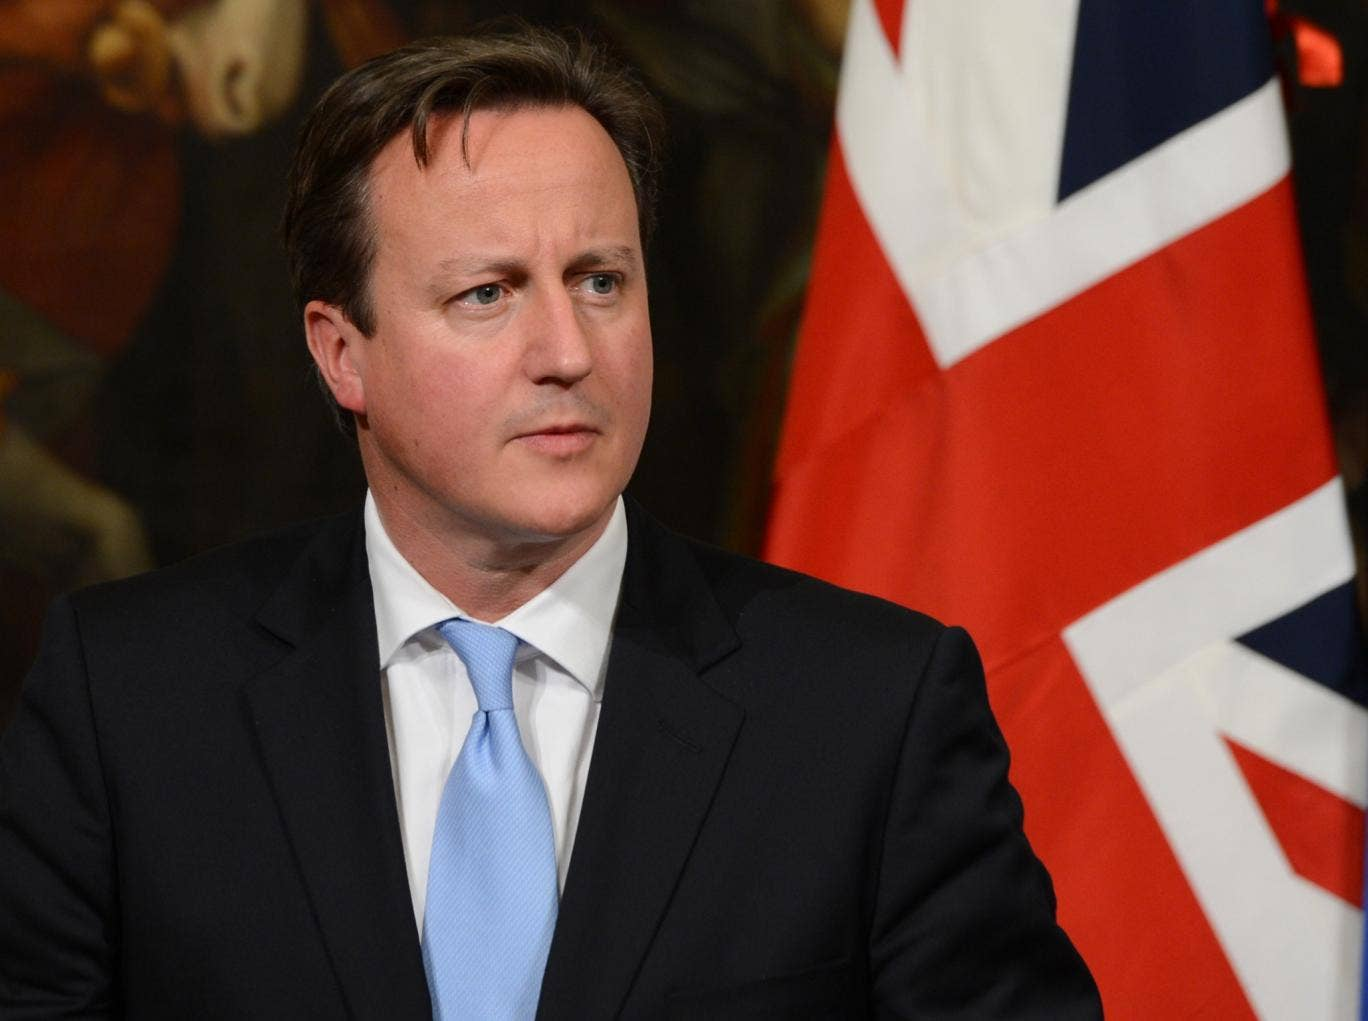 David Cameron heads to Brussels this week